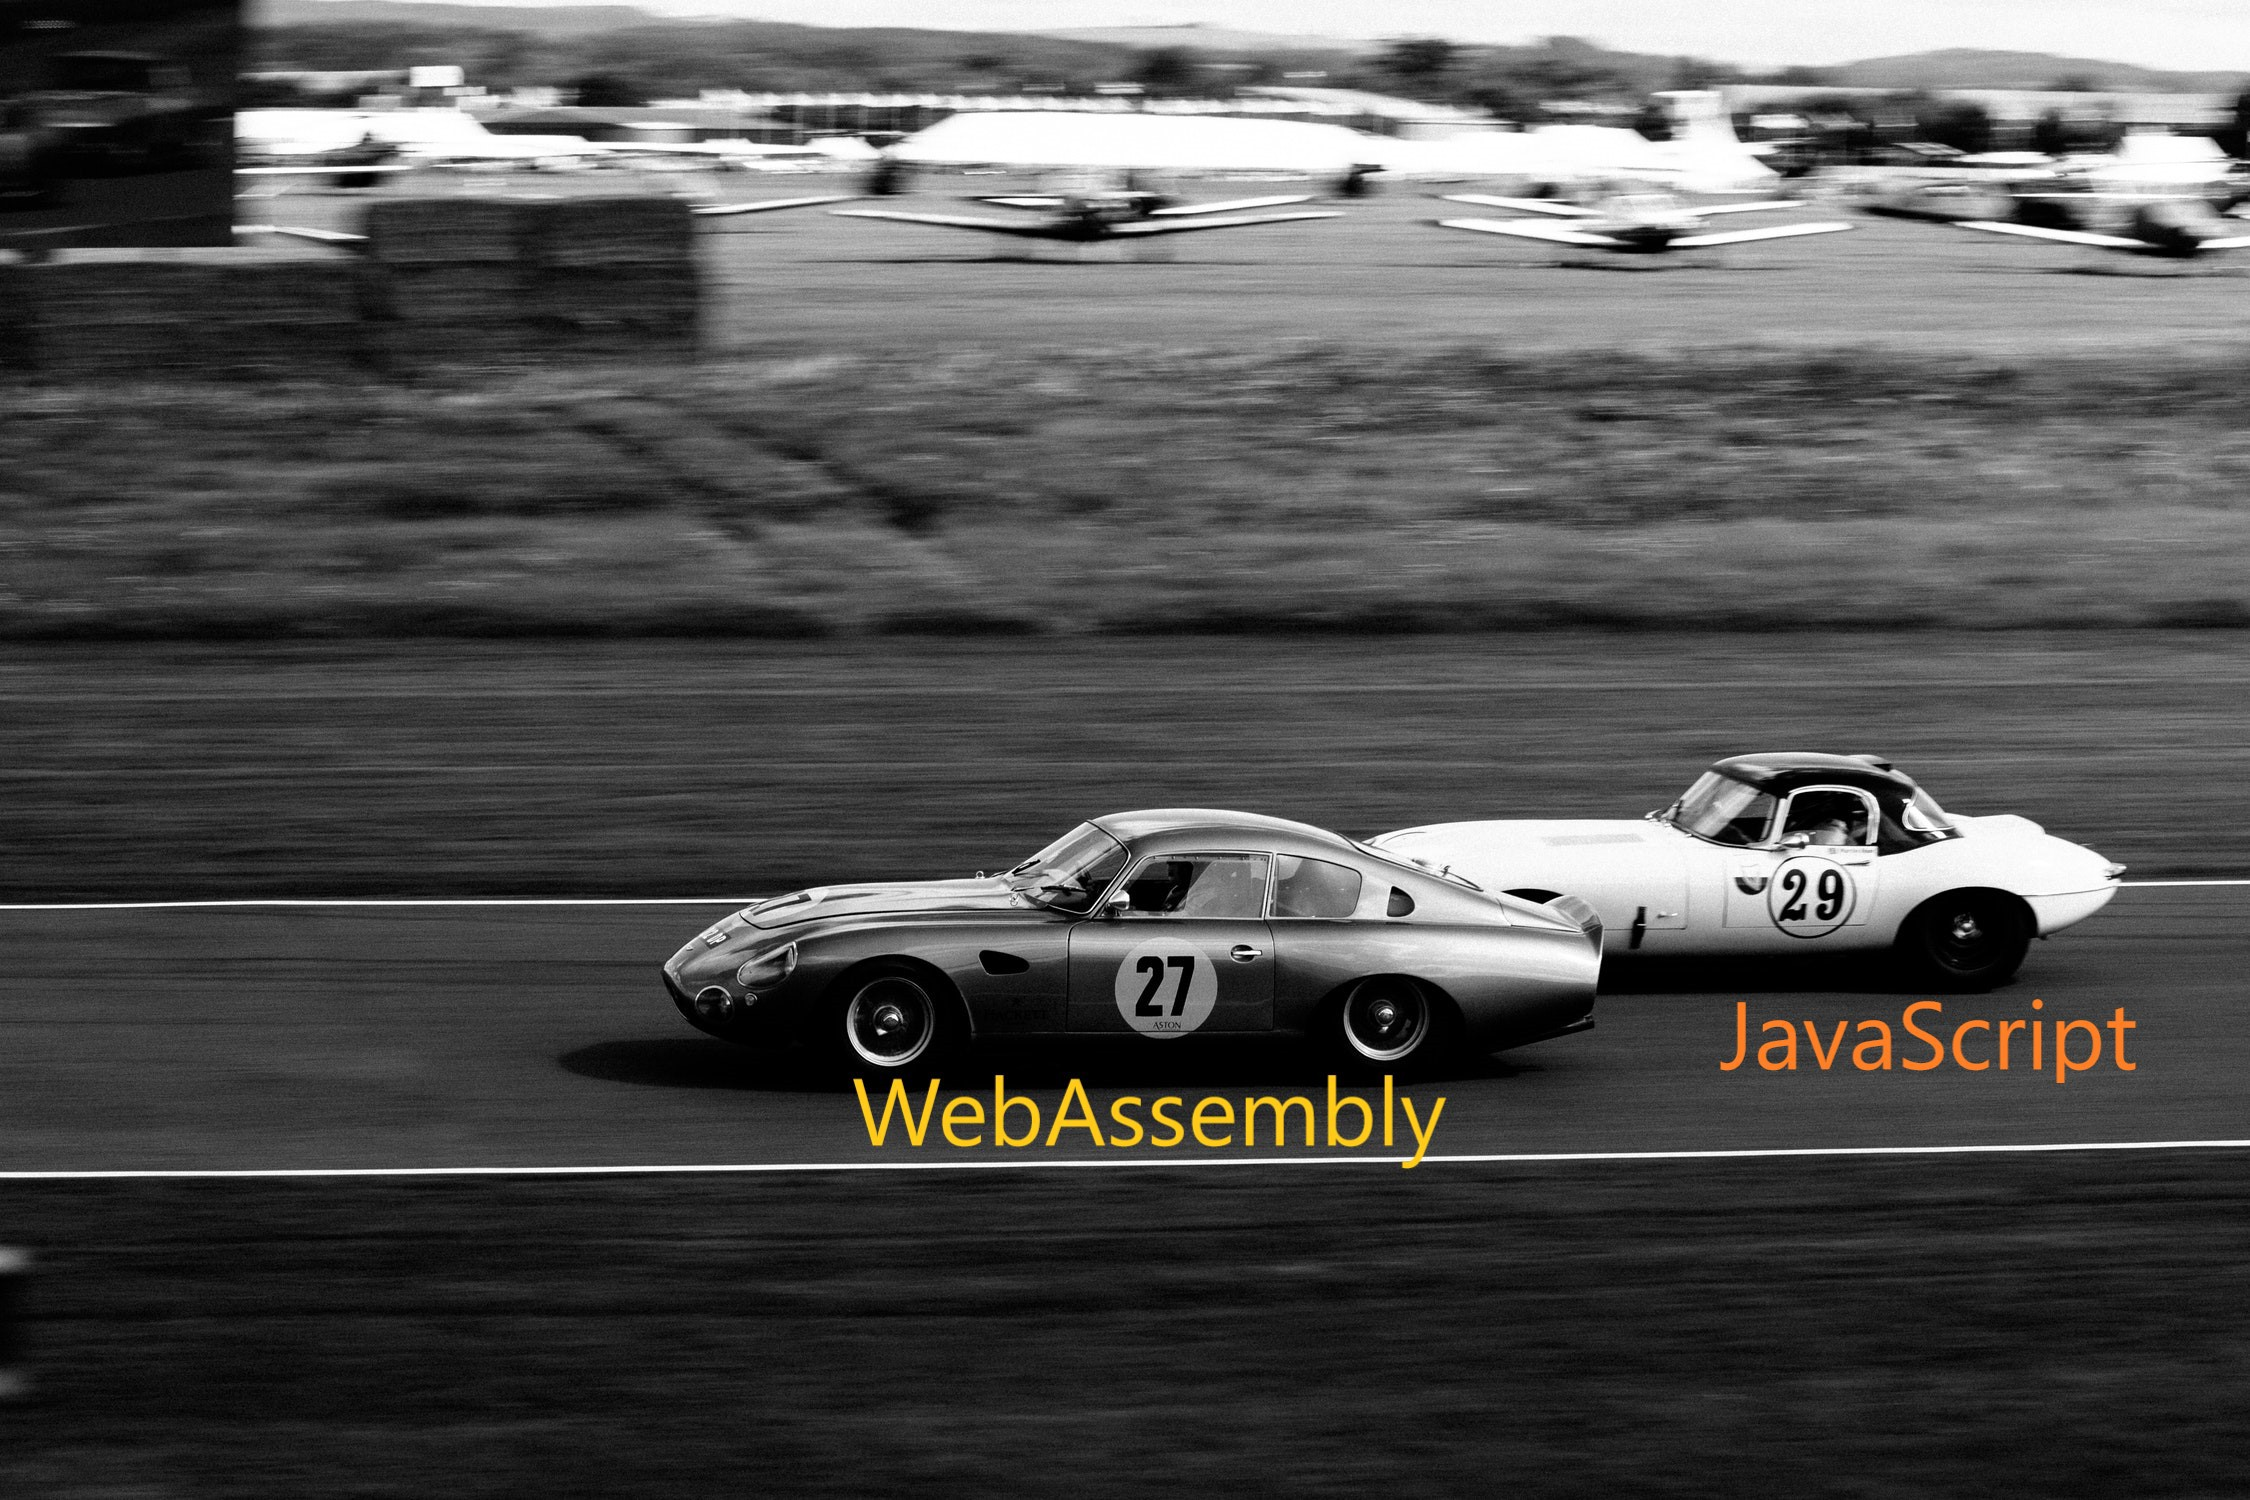 Is WebAssembly Really the Death of JavaScript? - Noteworthy - The